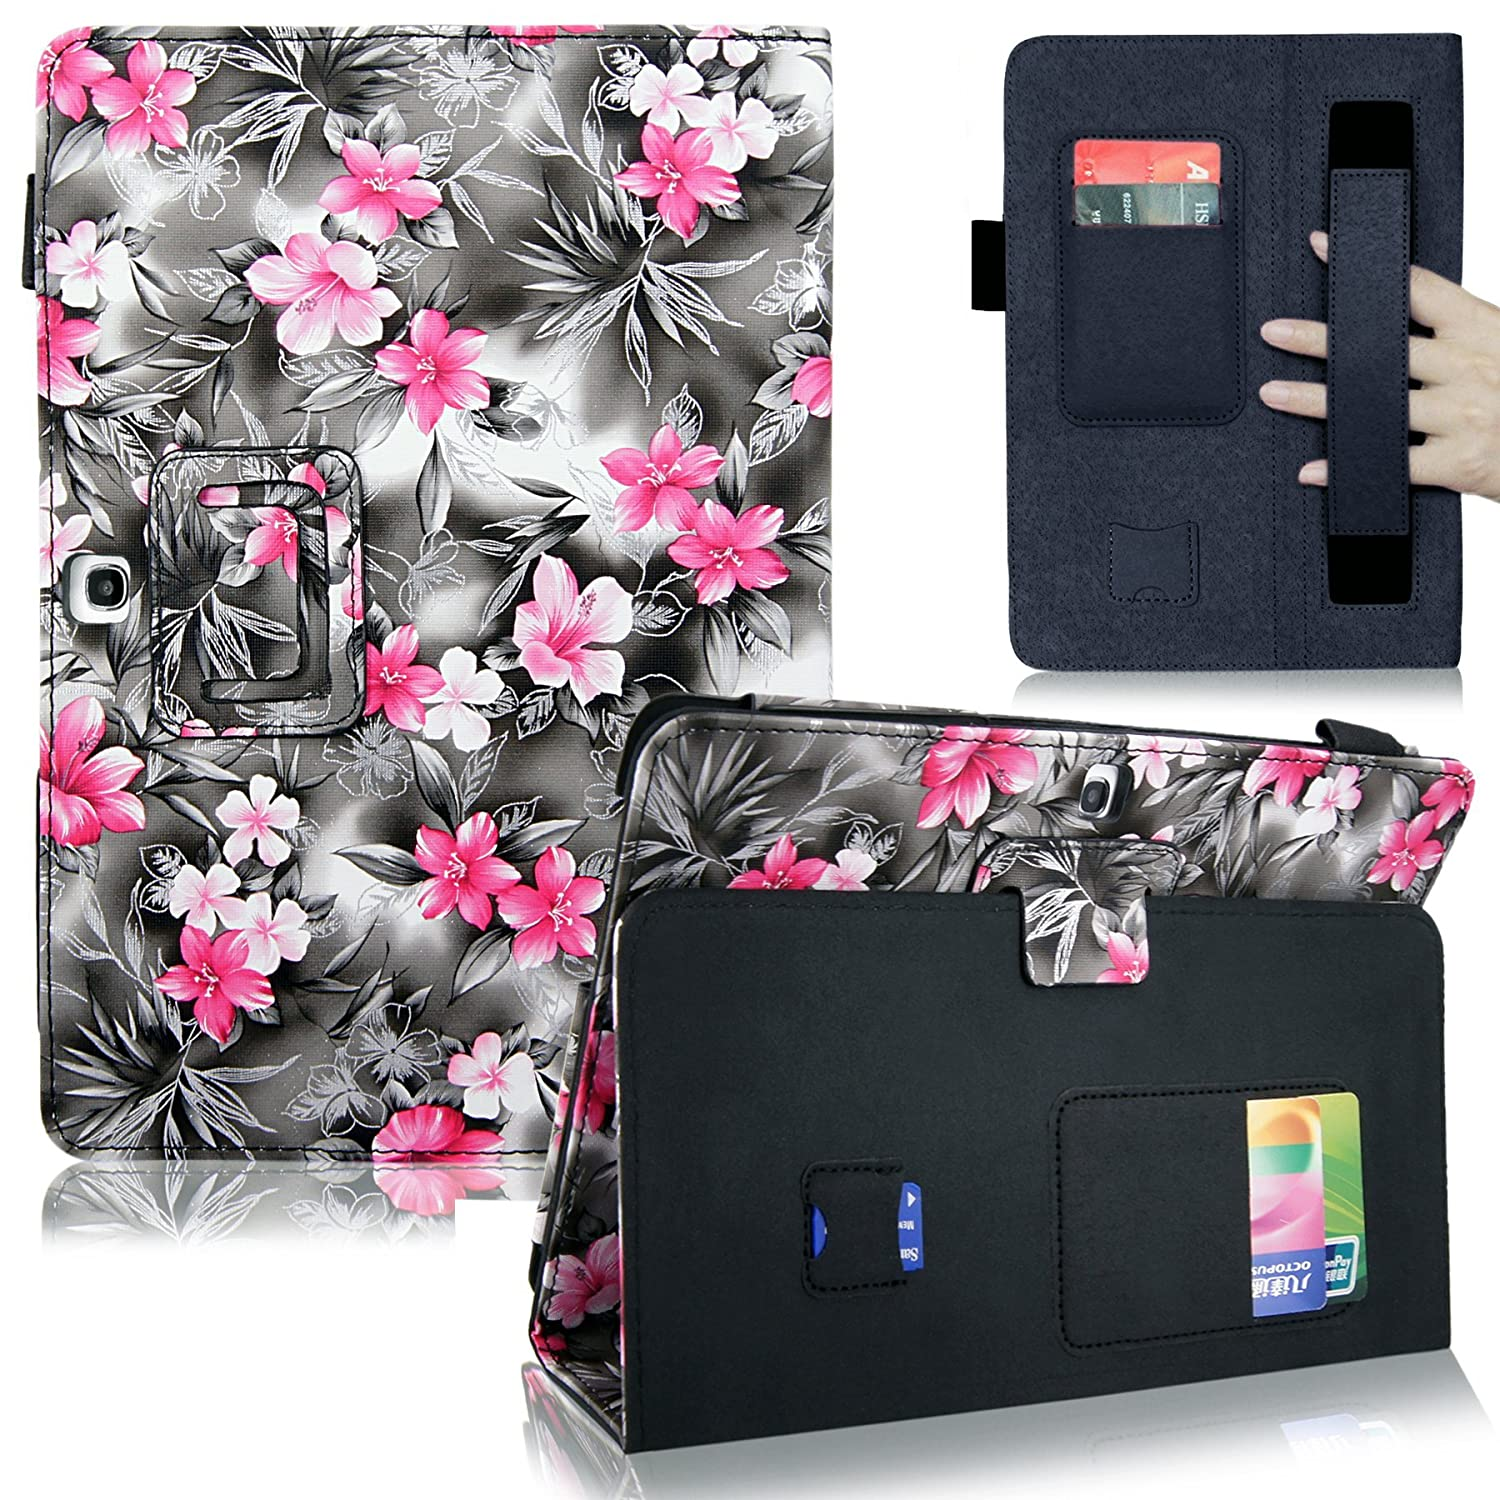 Cellularvilla Case for Samsung Galaxy tab 3 7 8 Gen Pu Leather Elastic Hand Strap Flip Folio Stand Case Cover + Stylus Touch Pen tablet funda case for samsung galaxy tab a 8 0 t350 t351 t355 p350 cover fashion painted flip silicon pu leather shell